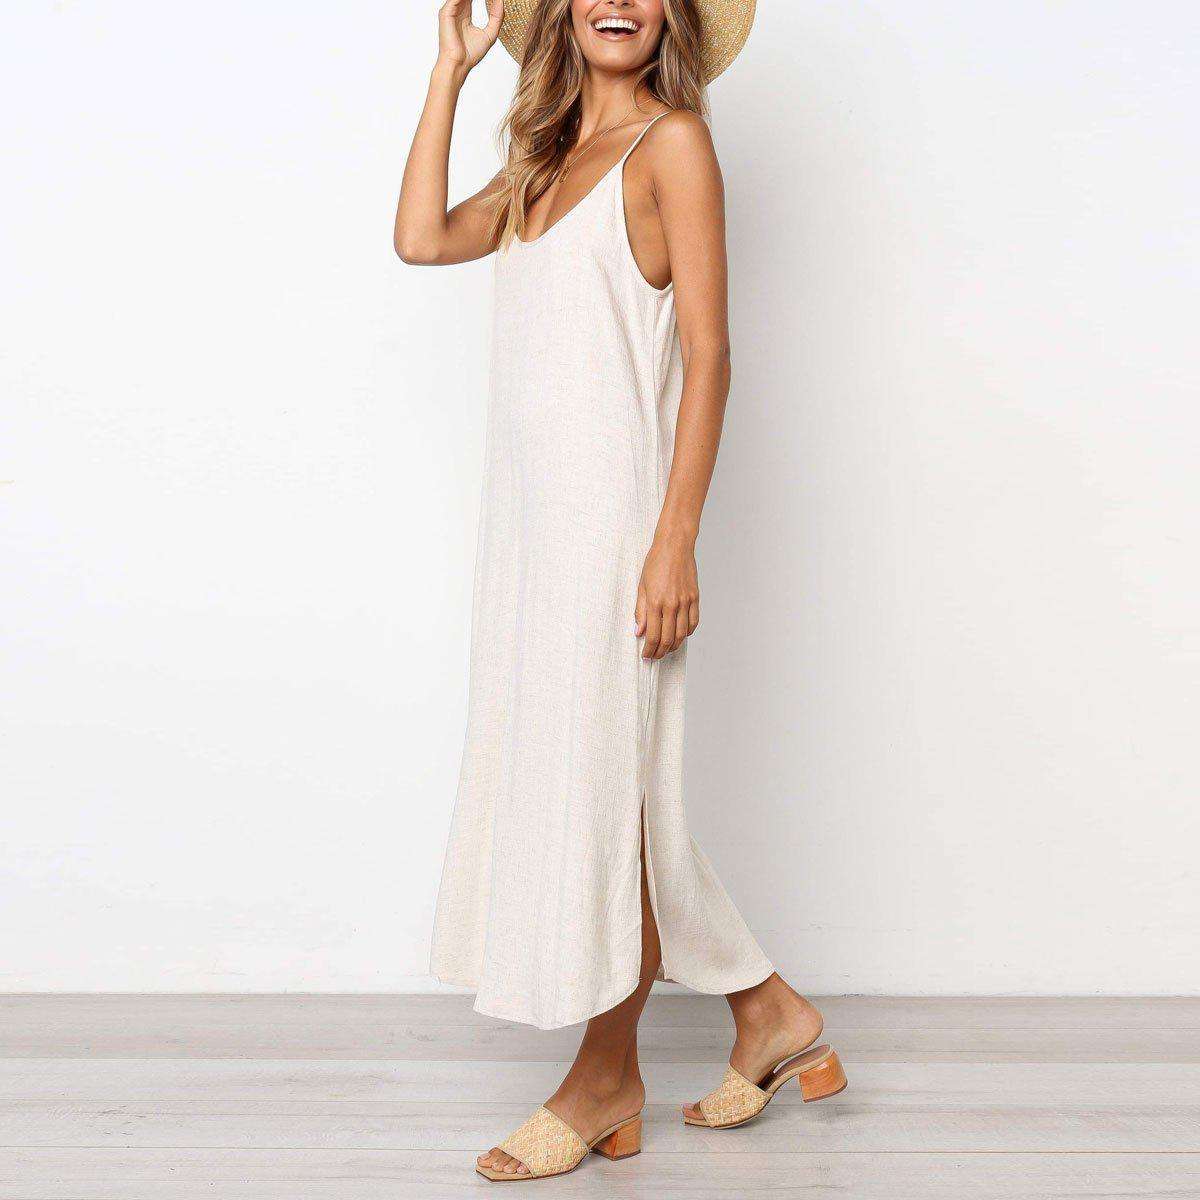 Ficcia Casual Plain Loose Vacation Dress